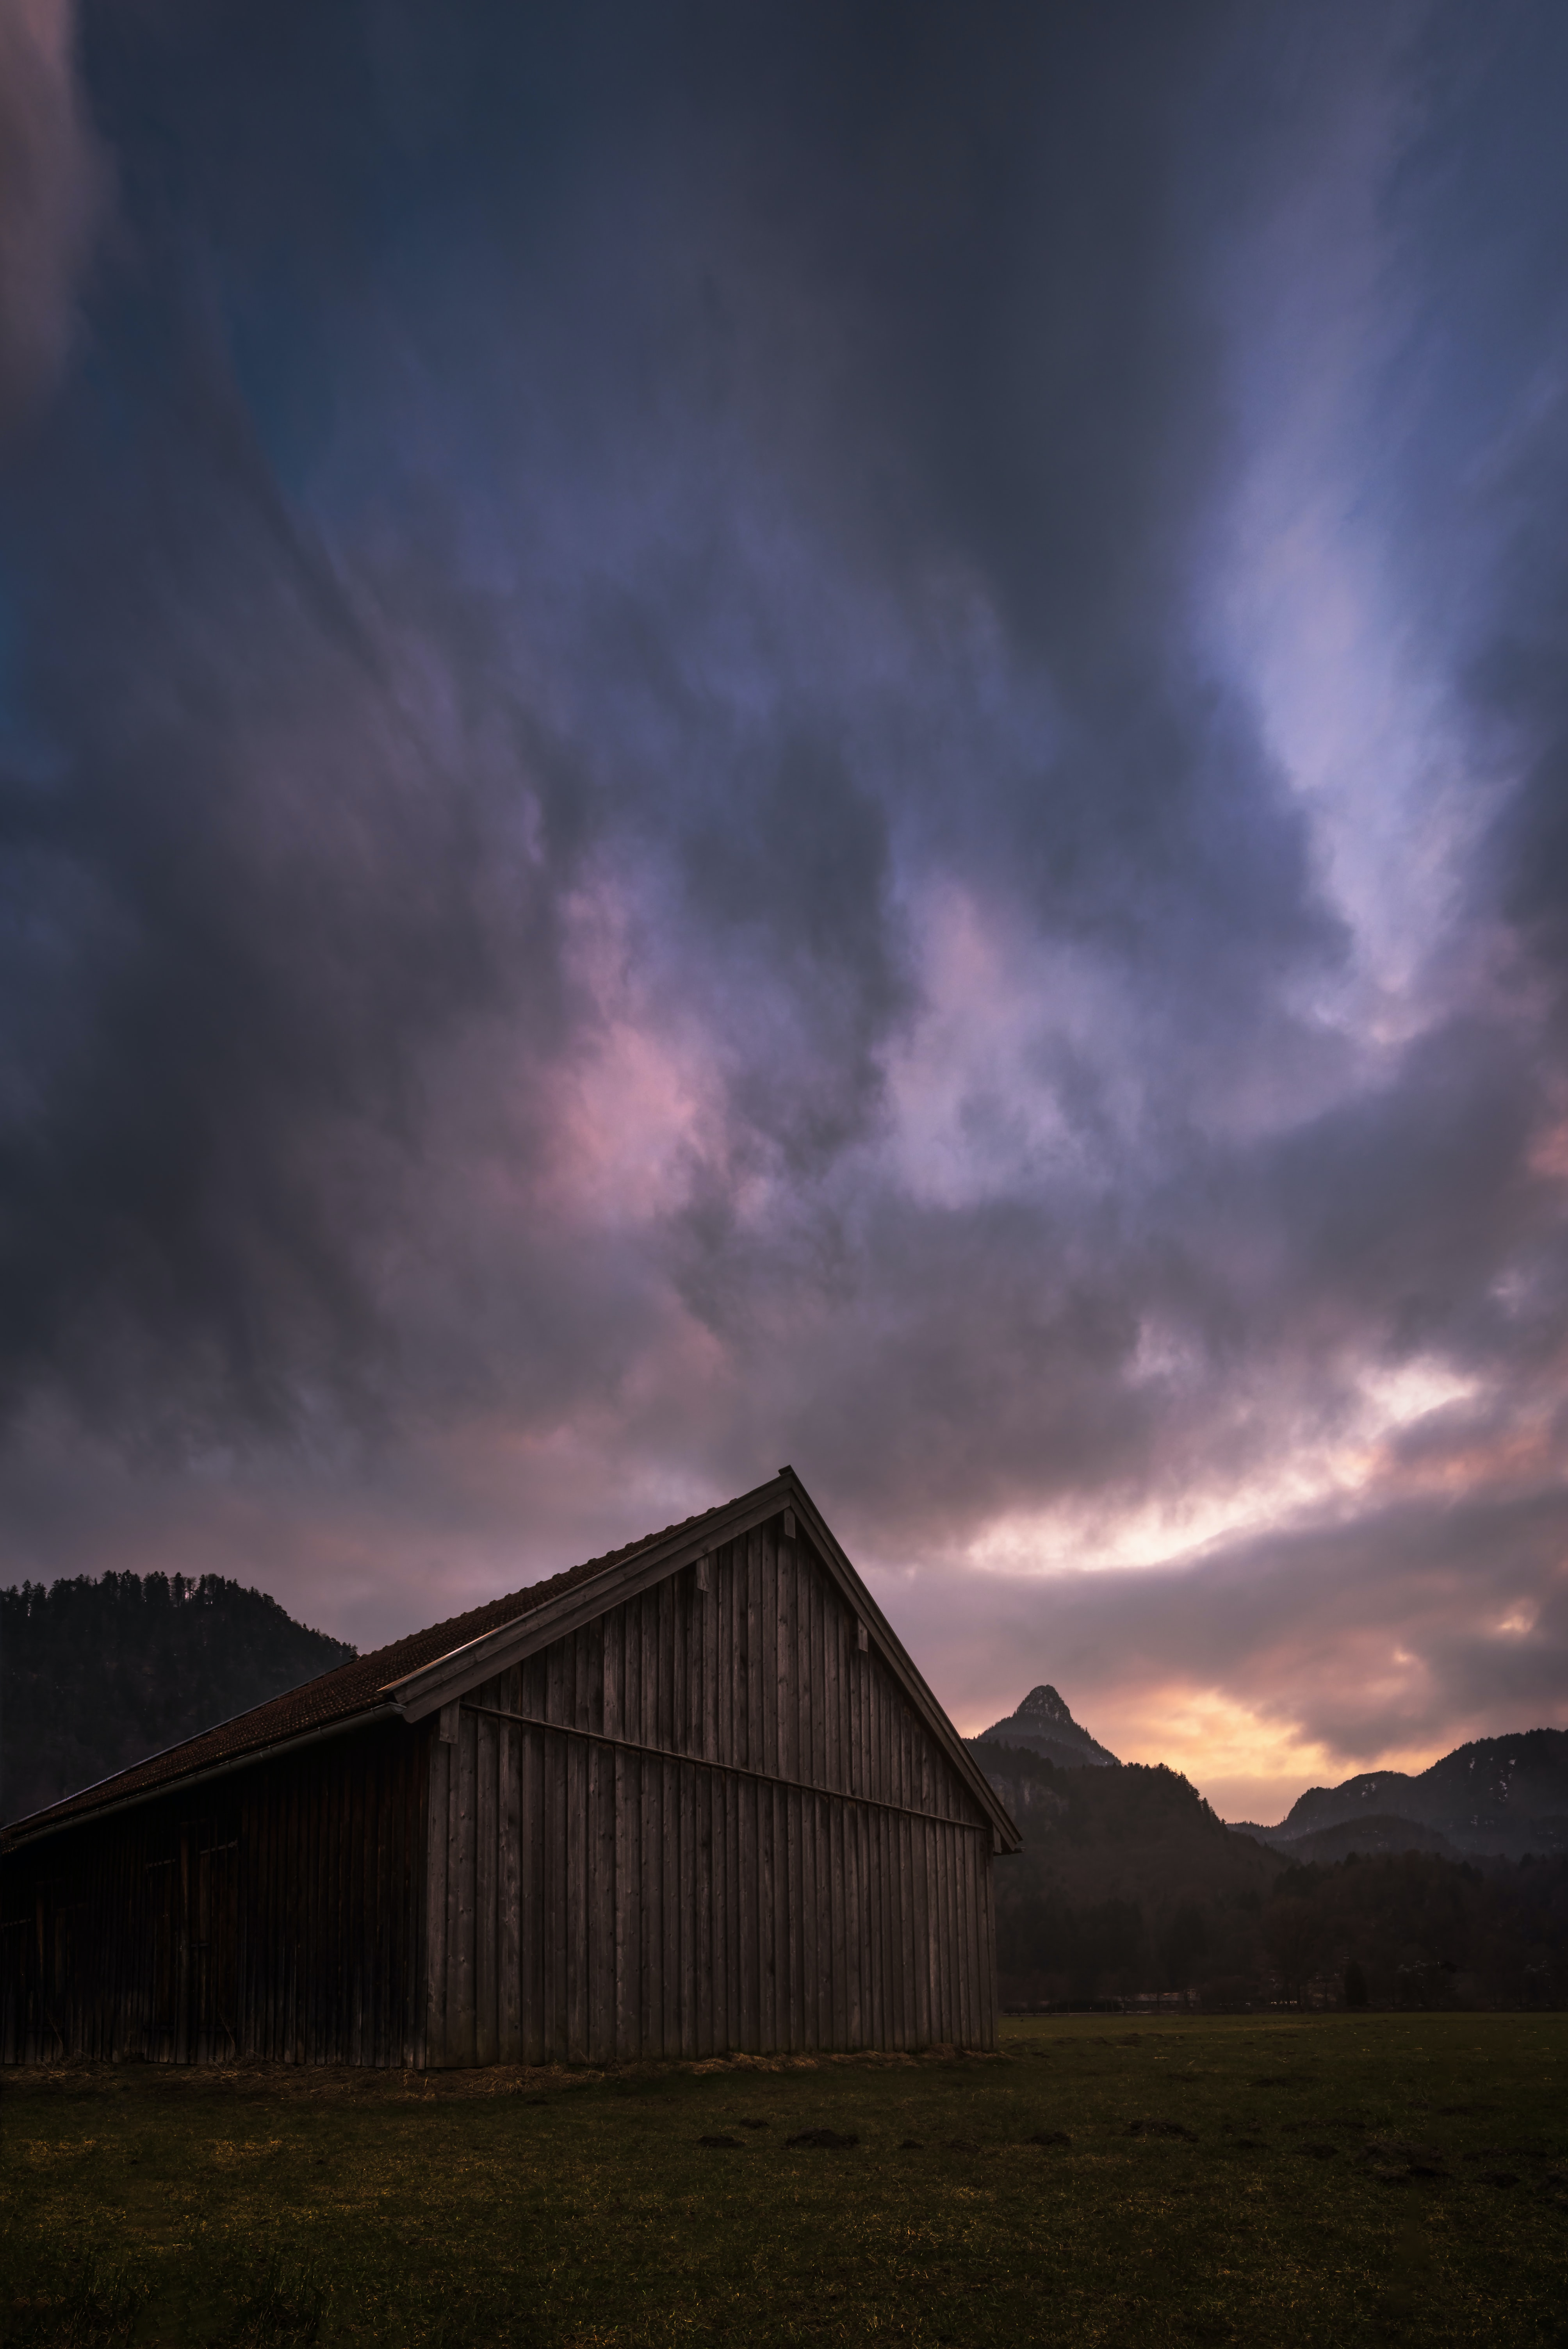 brown wooden barn under gray clouds